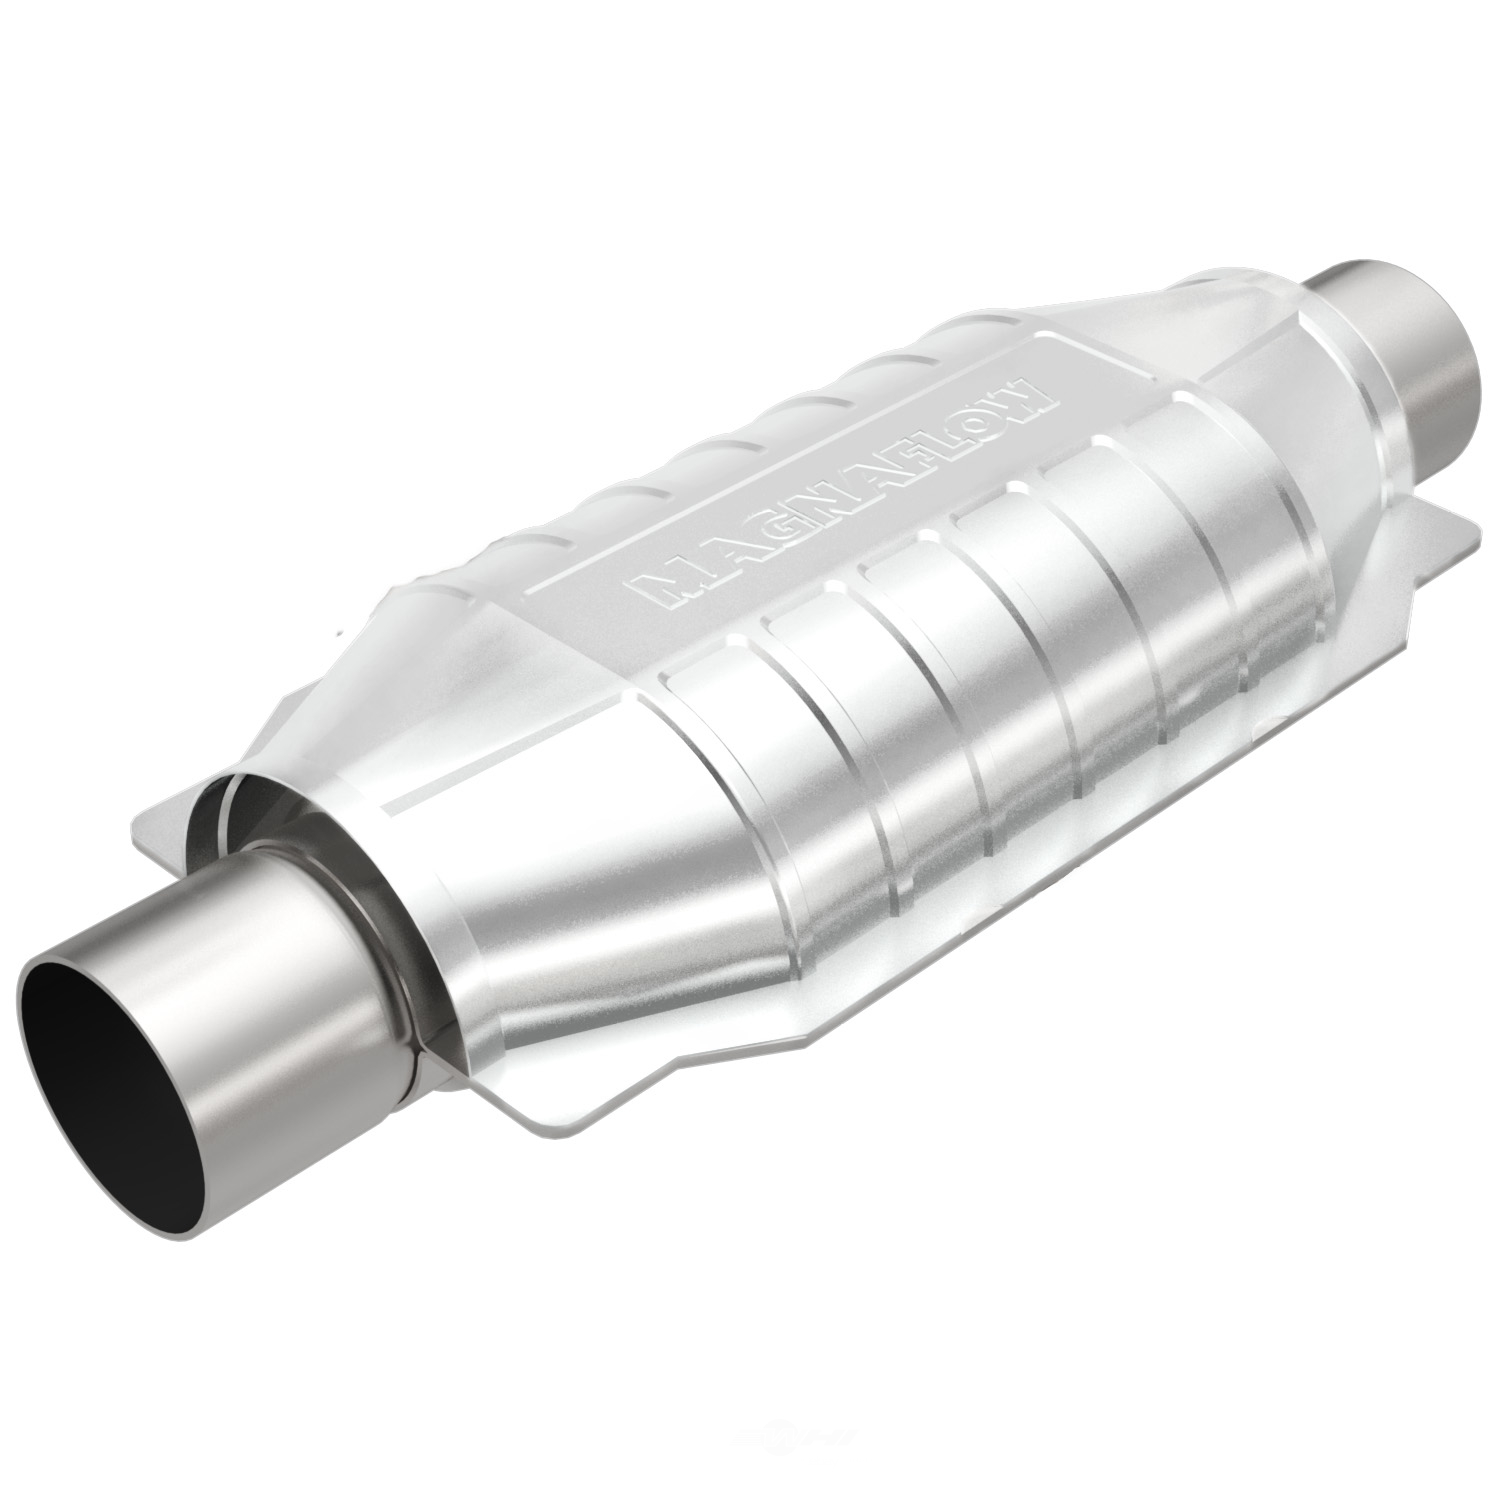 MAGNAFLOW CARB COMPLIANT CONVERTER - 2.25in. Universal California Pre-OBDII Catalytic Converter - MFC 334005